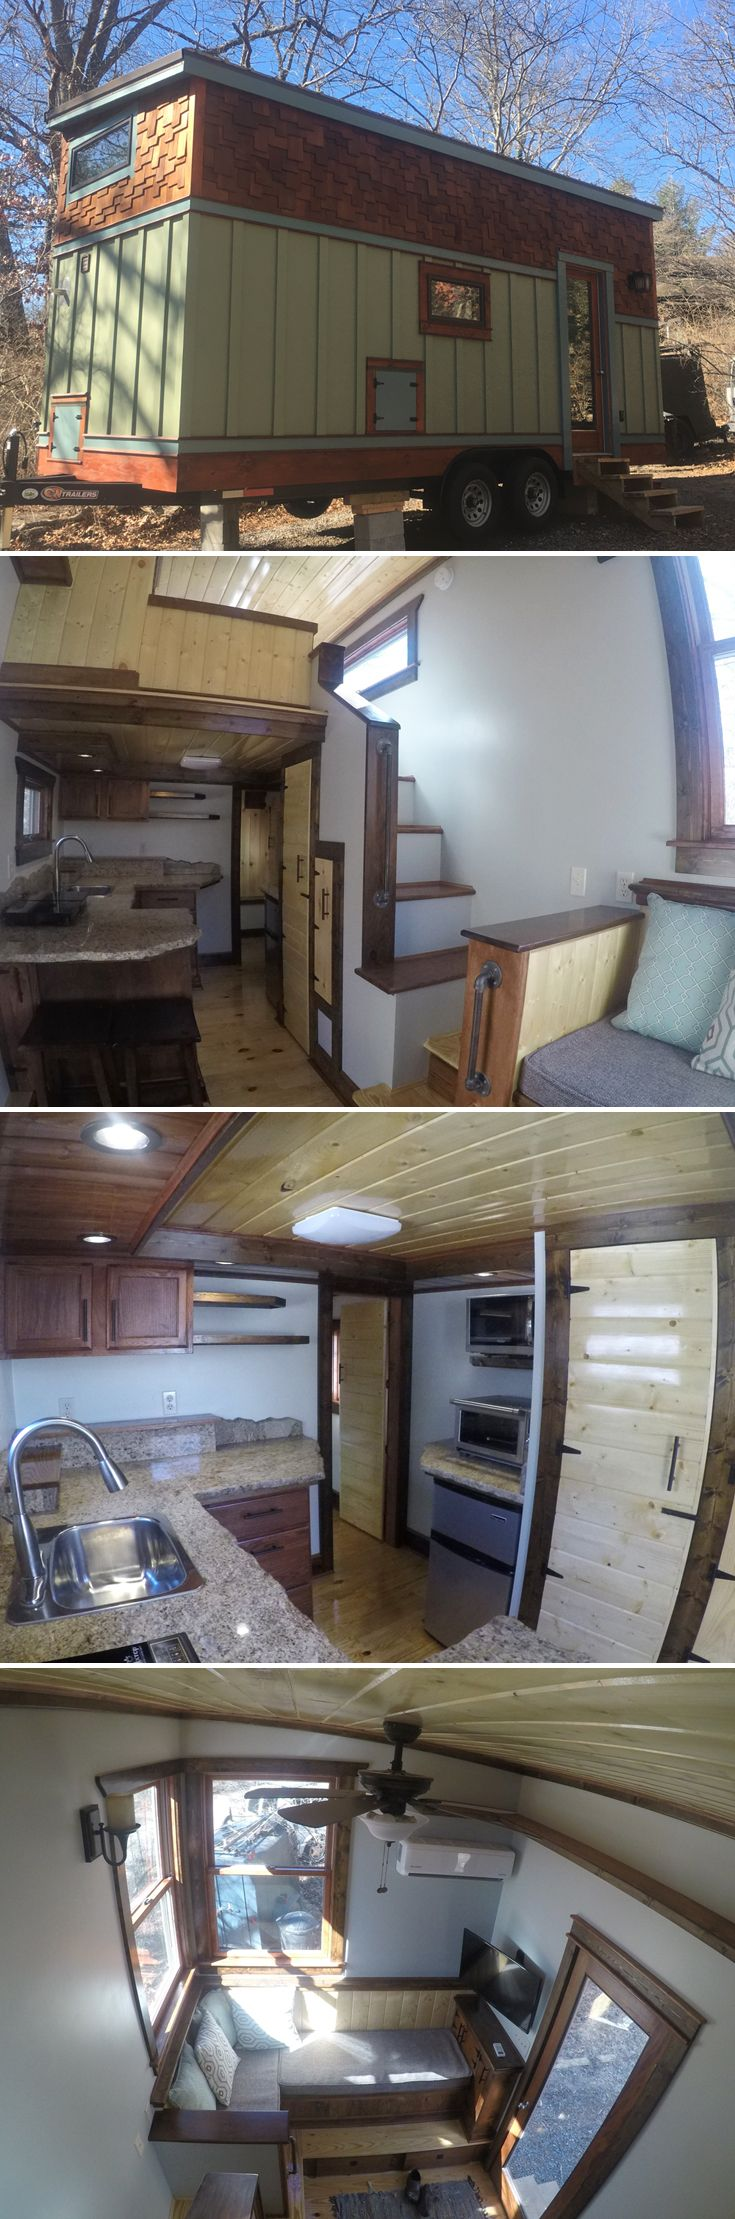 Blue Ridge is an 18' craftsman style tiny house from Aneides Tiny Homes featuring a sunken queen bedroom loft and several built-in storage areas.